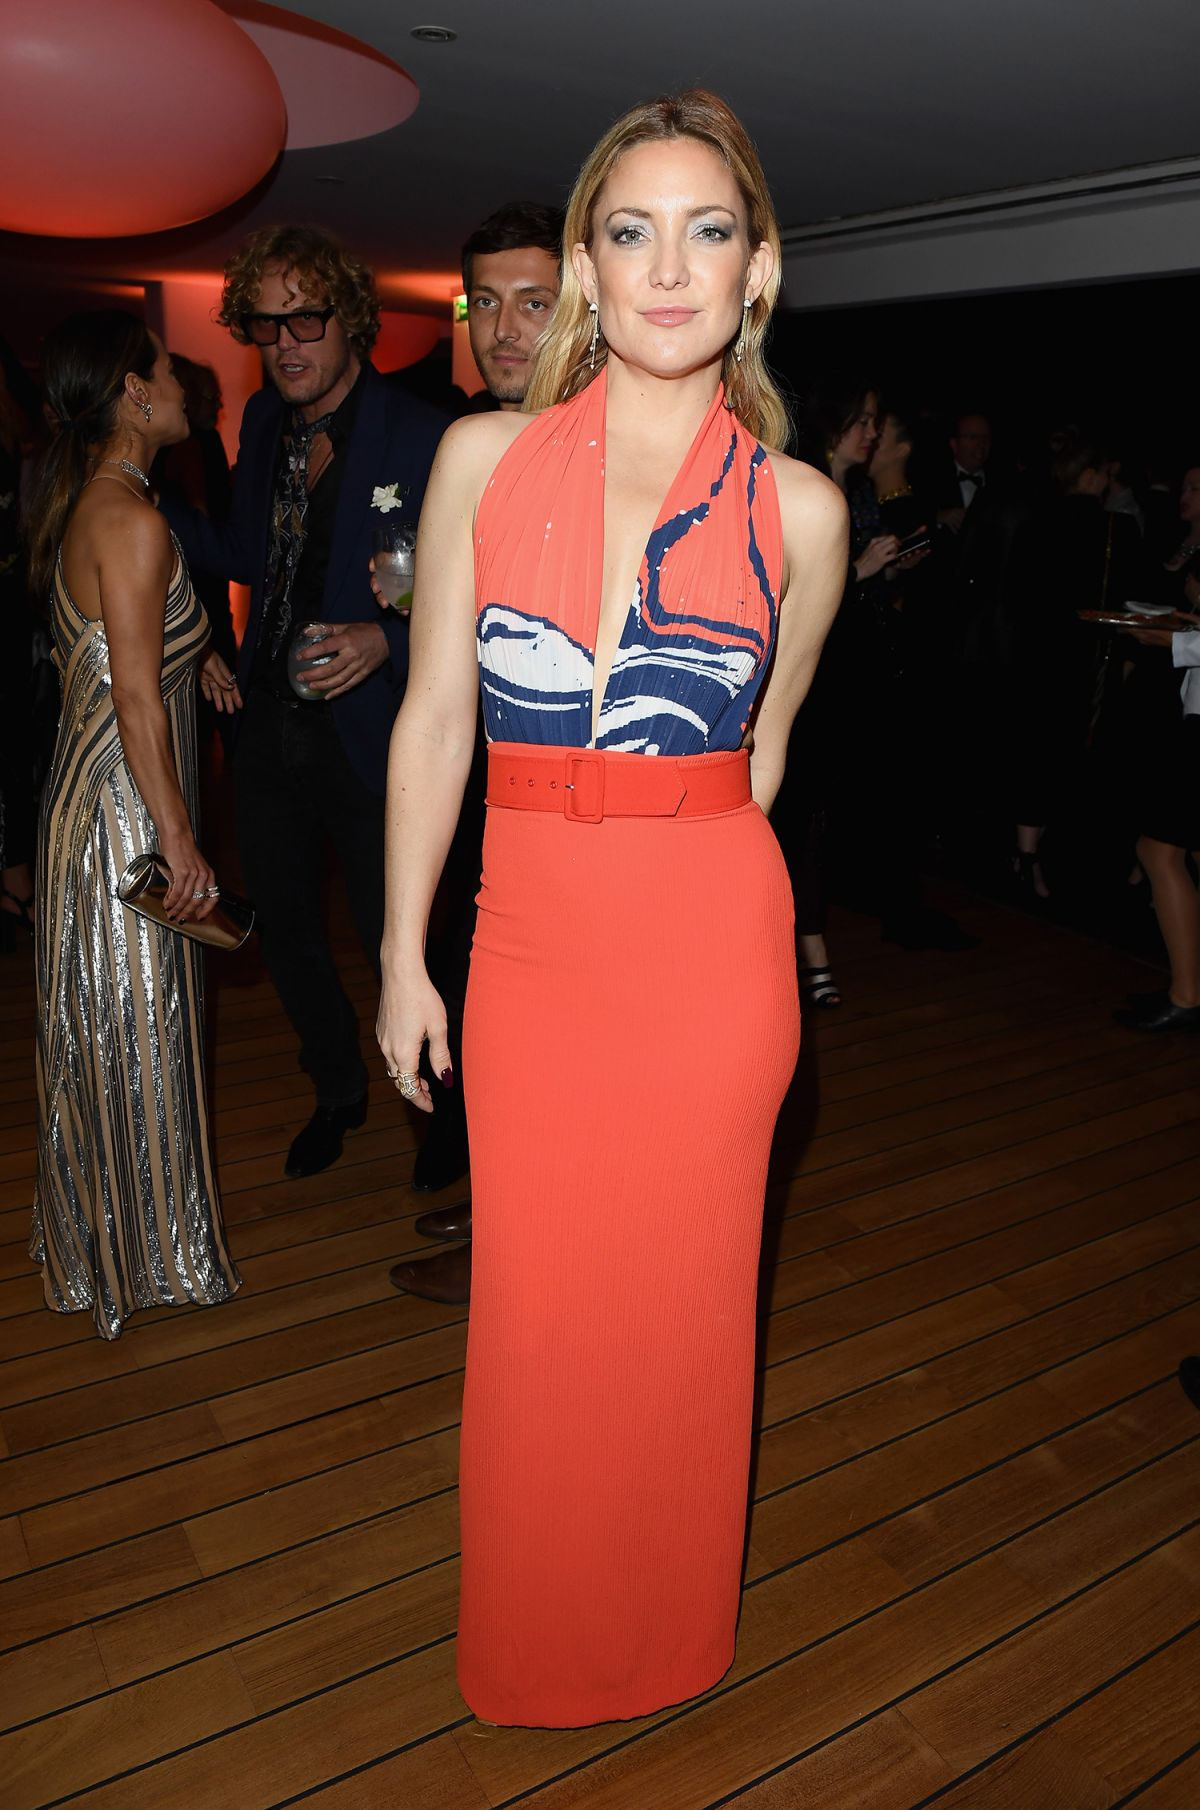 KATE HUDSON at Vanity Fair & Chopard After-party in Cannes 05/14/2016